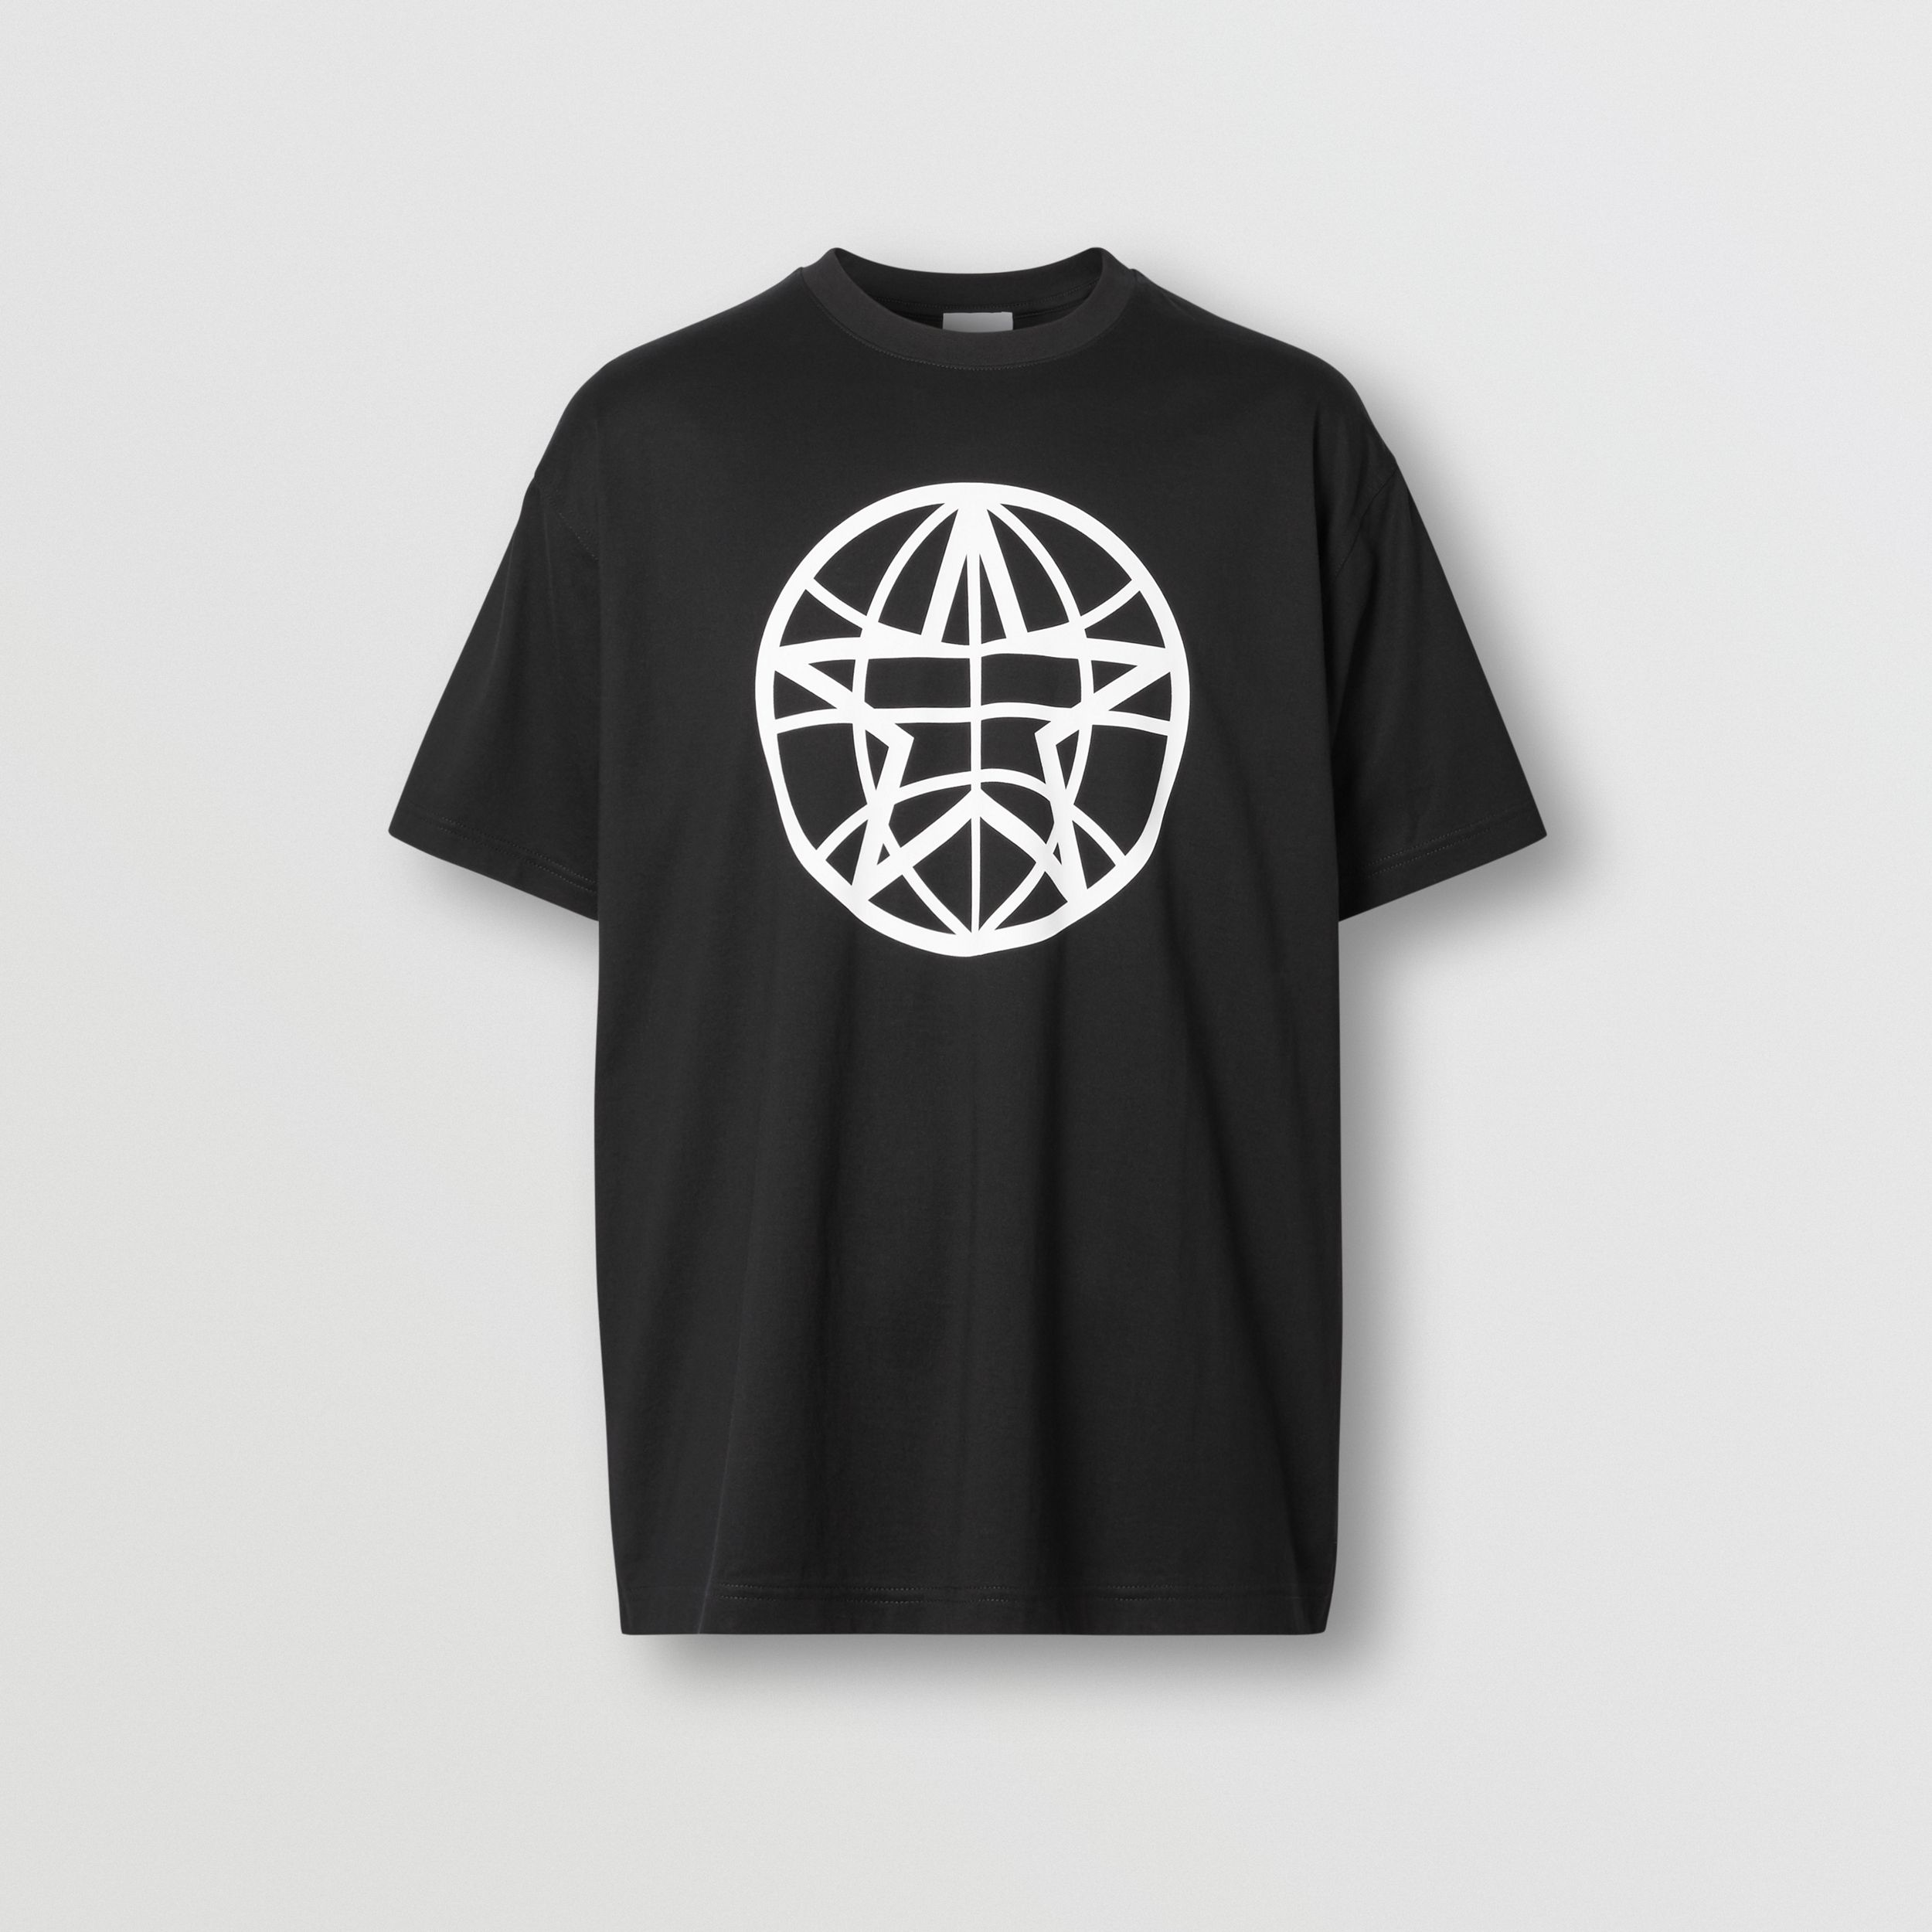 Globe Graphic Cotton Oversized T-shirt in Black - Men | Burberry - 4